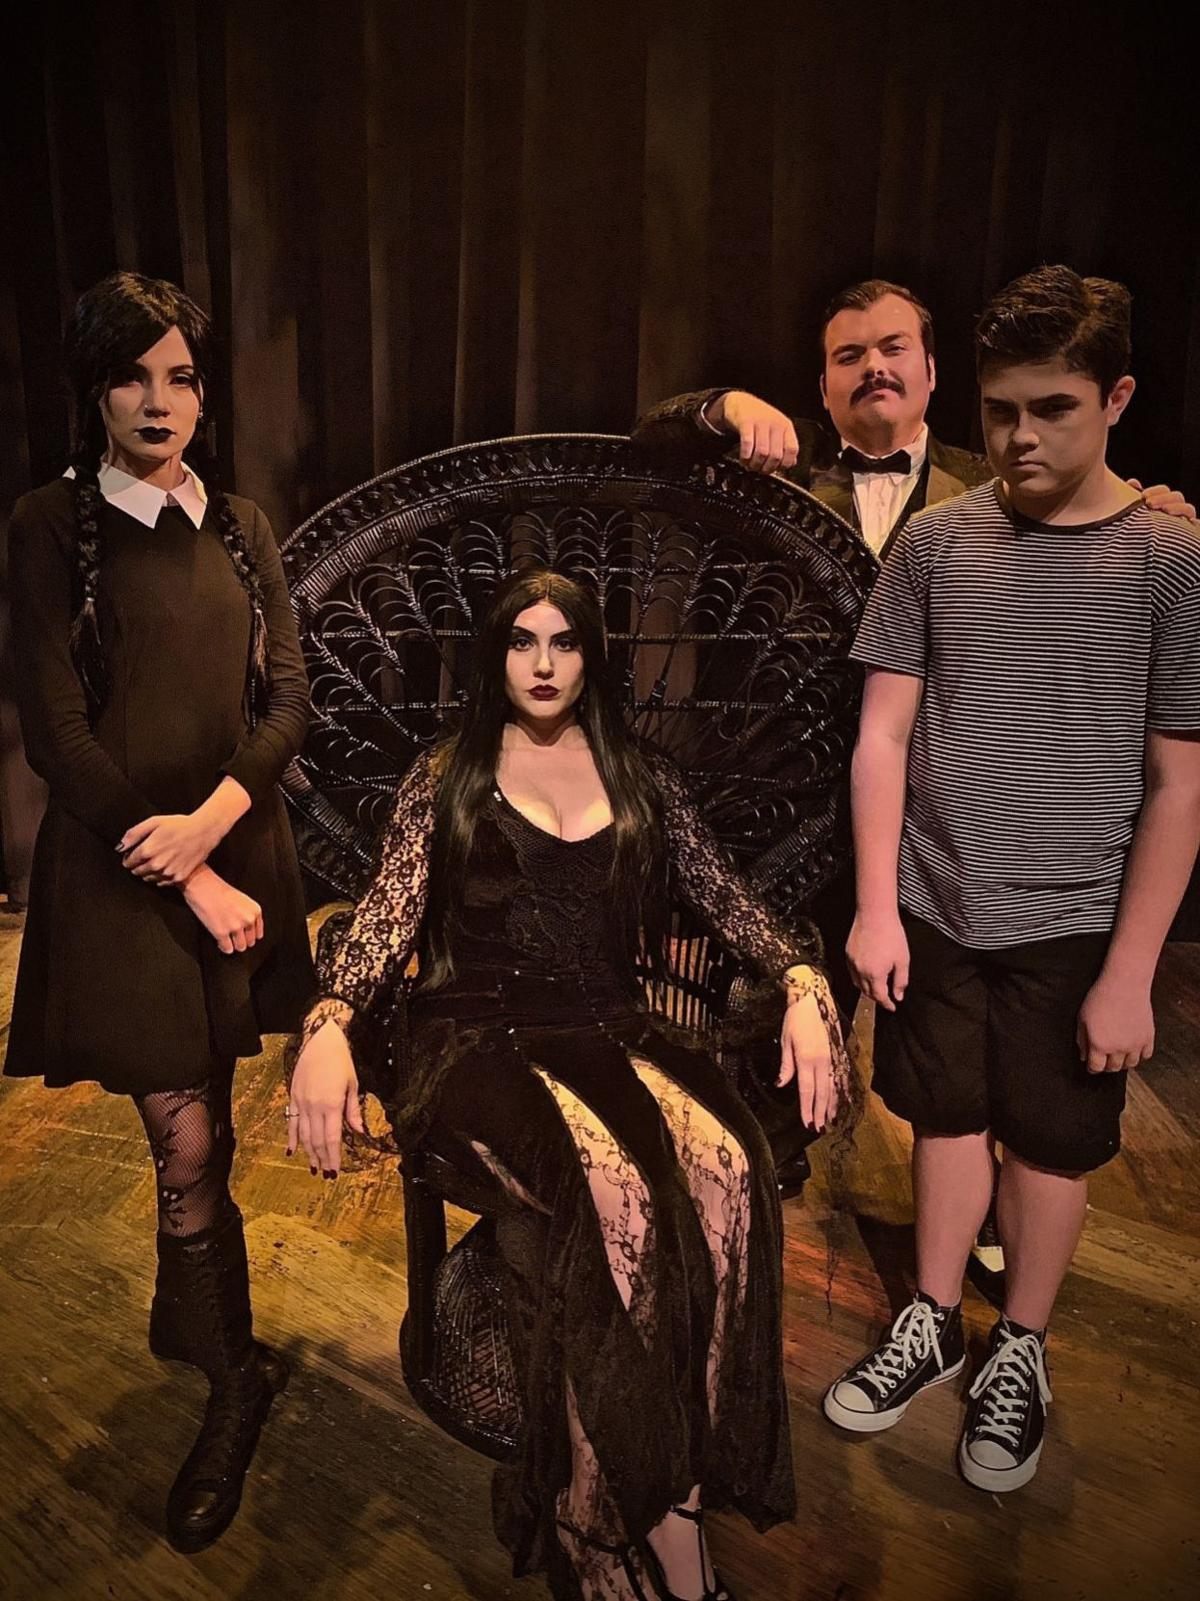 Meet the Addams family at GCT. This stage show opens Oct. 18.